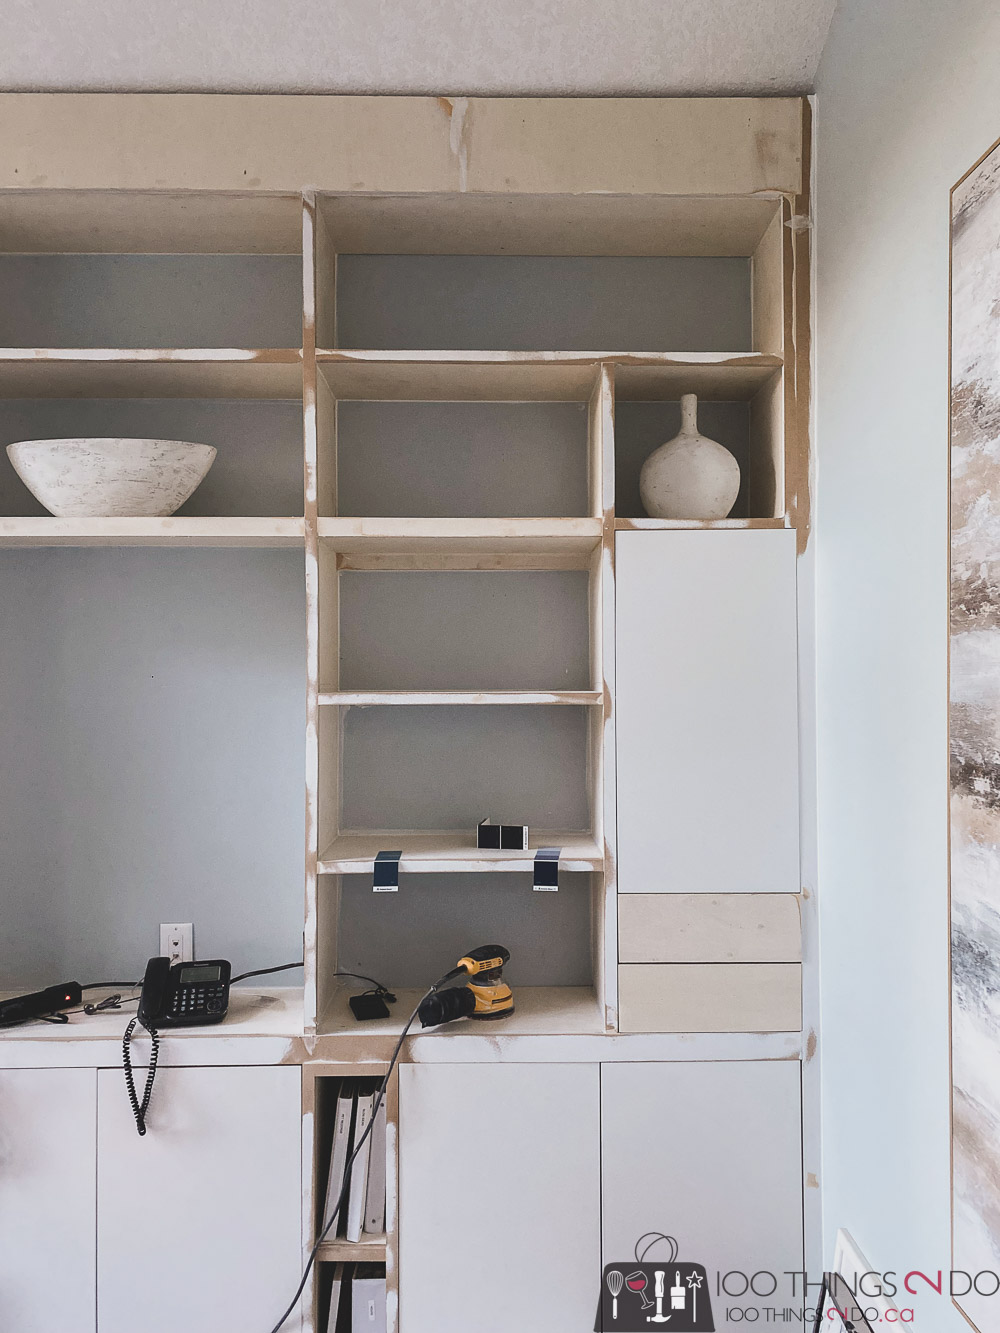 trimming out home office built-ins